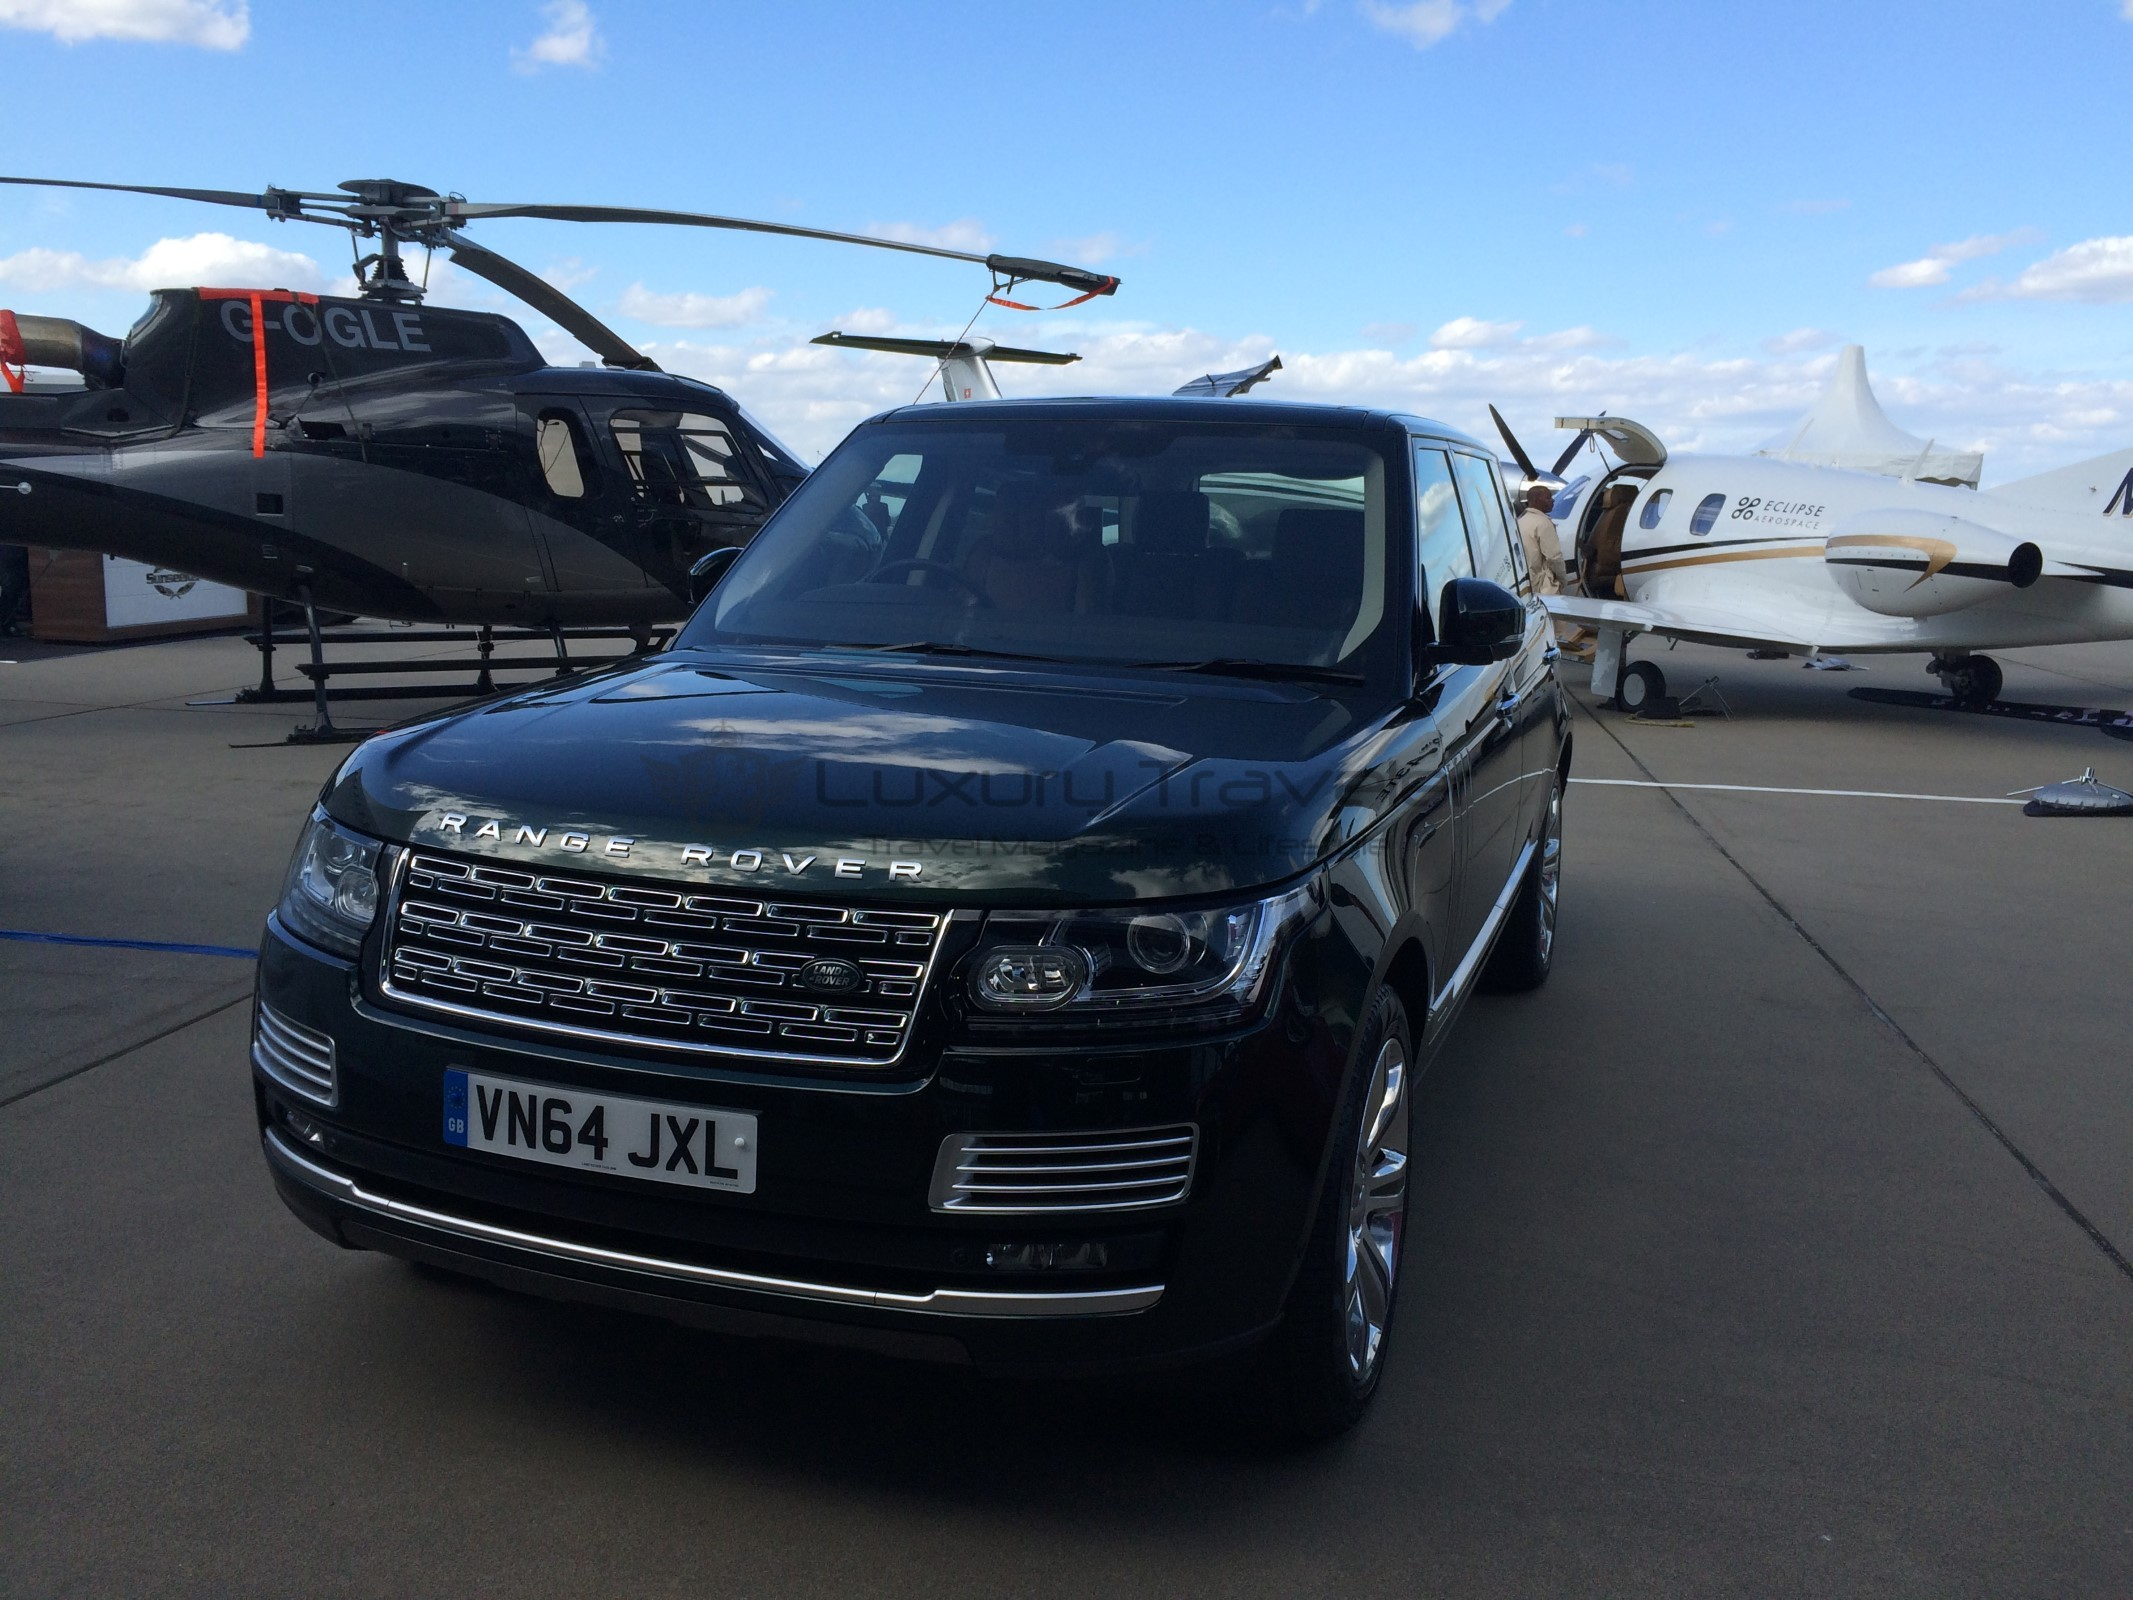 eg_chauffers_luxury_london_uk_range_rover